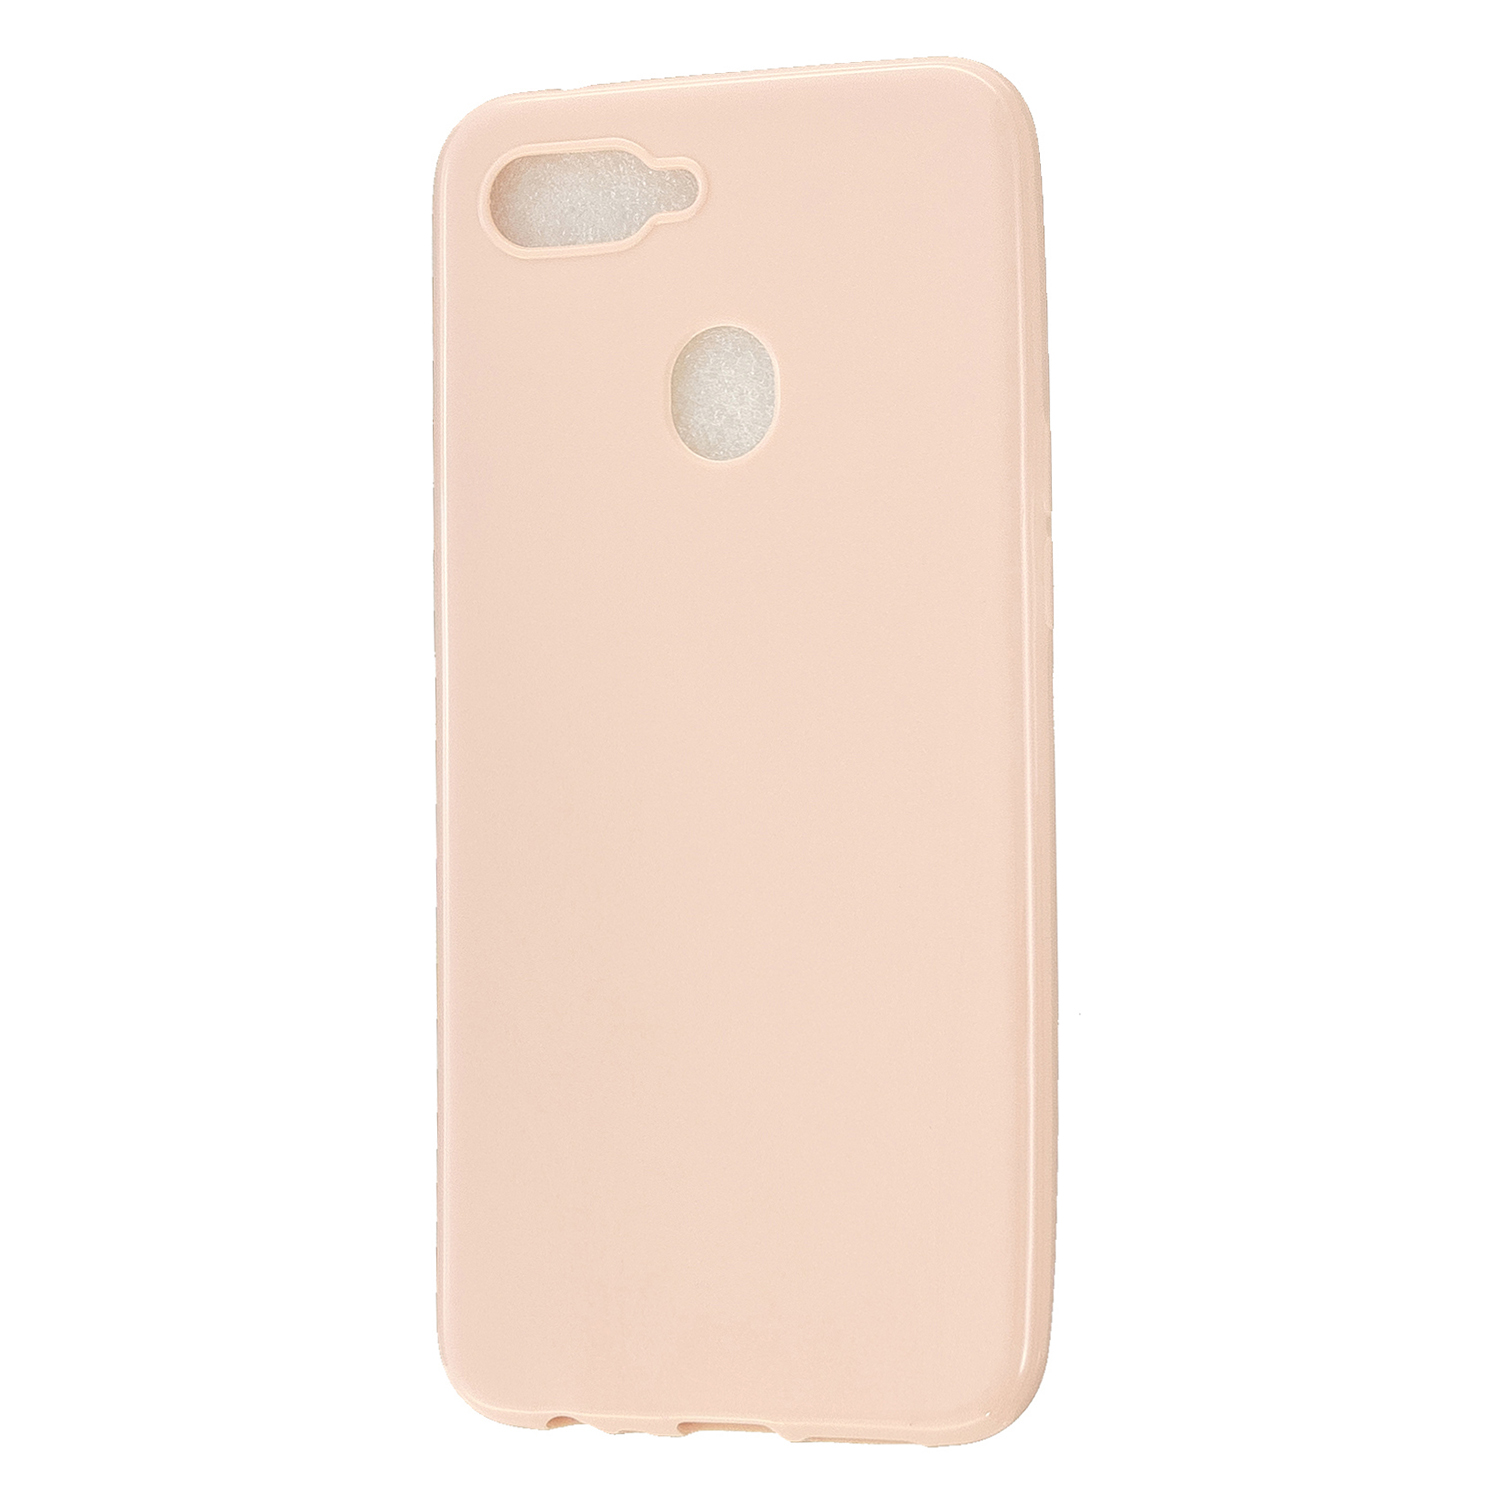 For OPPO A7/F9/F9 Pro Cellphone Cover Non-Slip Ultra Thin Silm Fit Easy Install Soft TPU Smartphone Shell Sakura pink